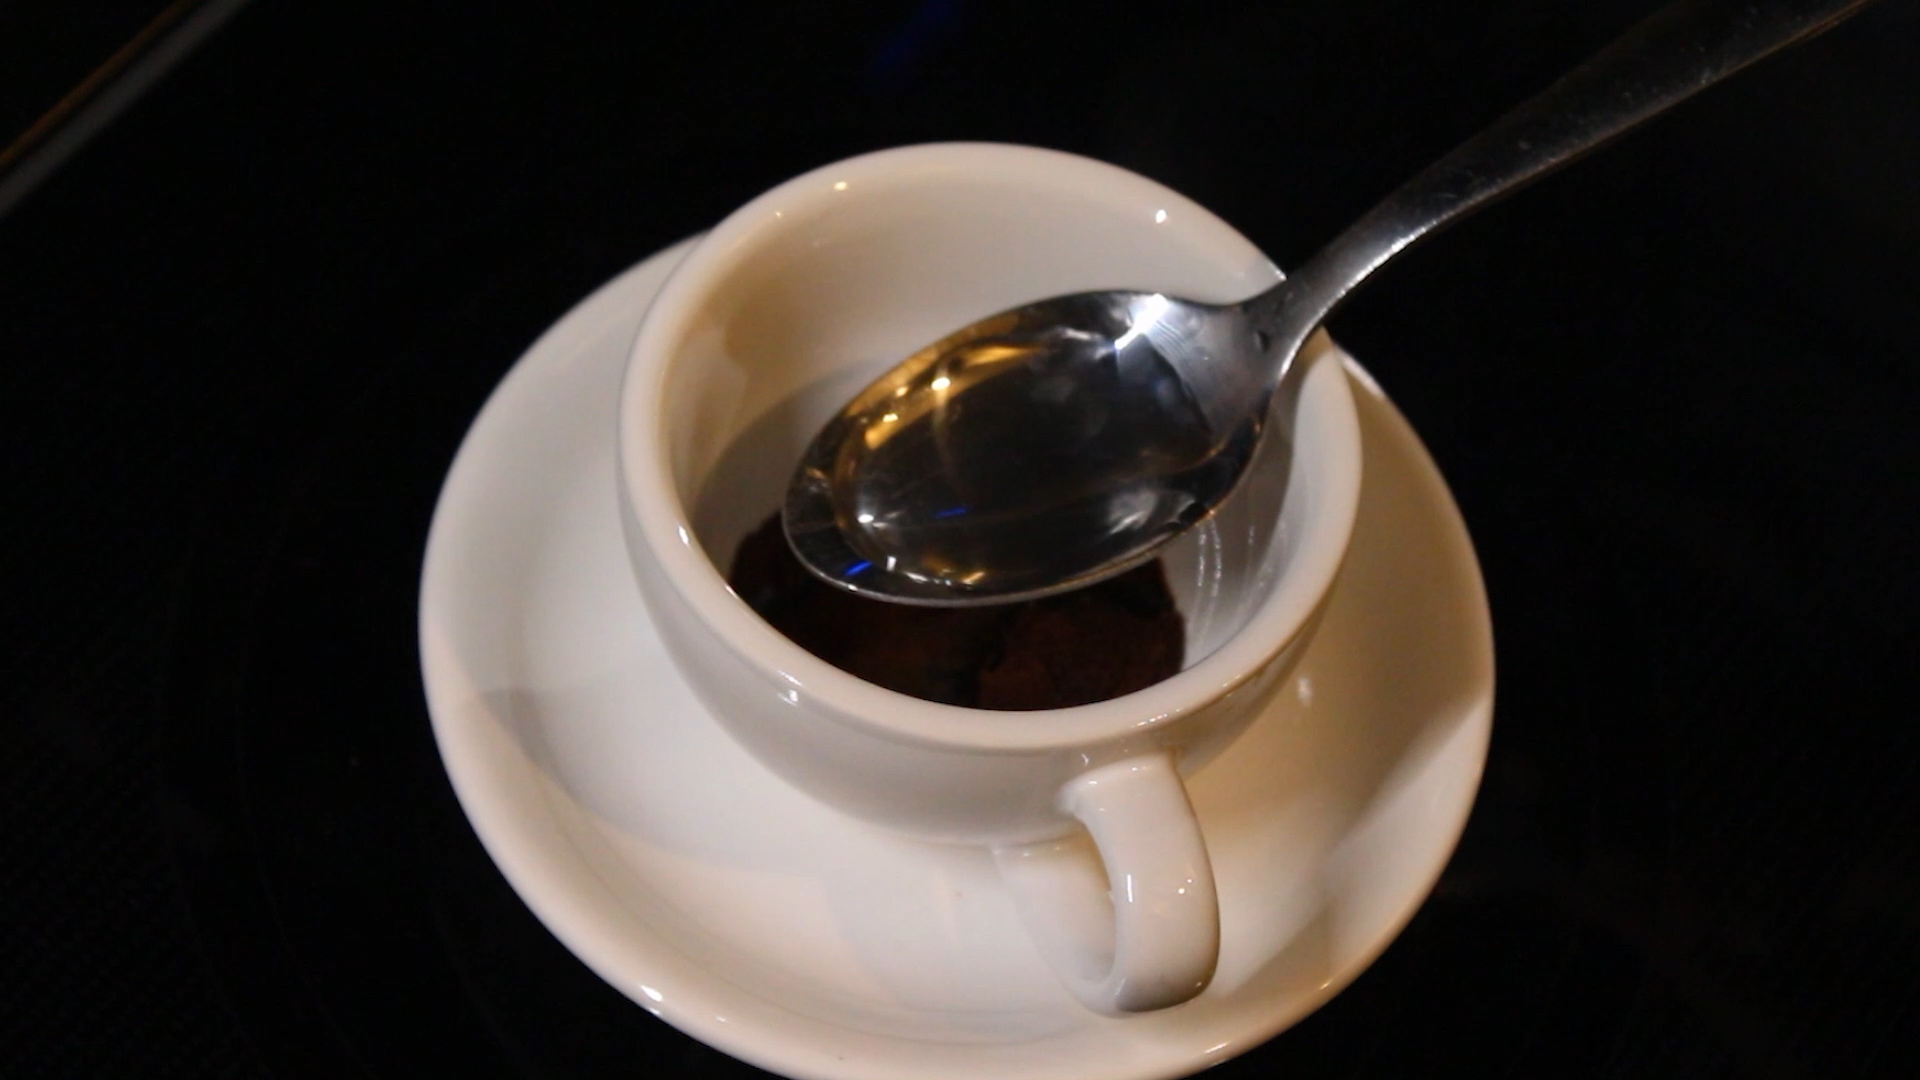 a teaspoon of warm water to pour in the cup